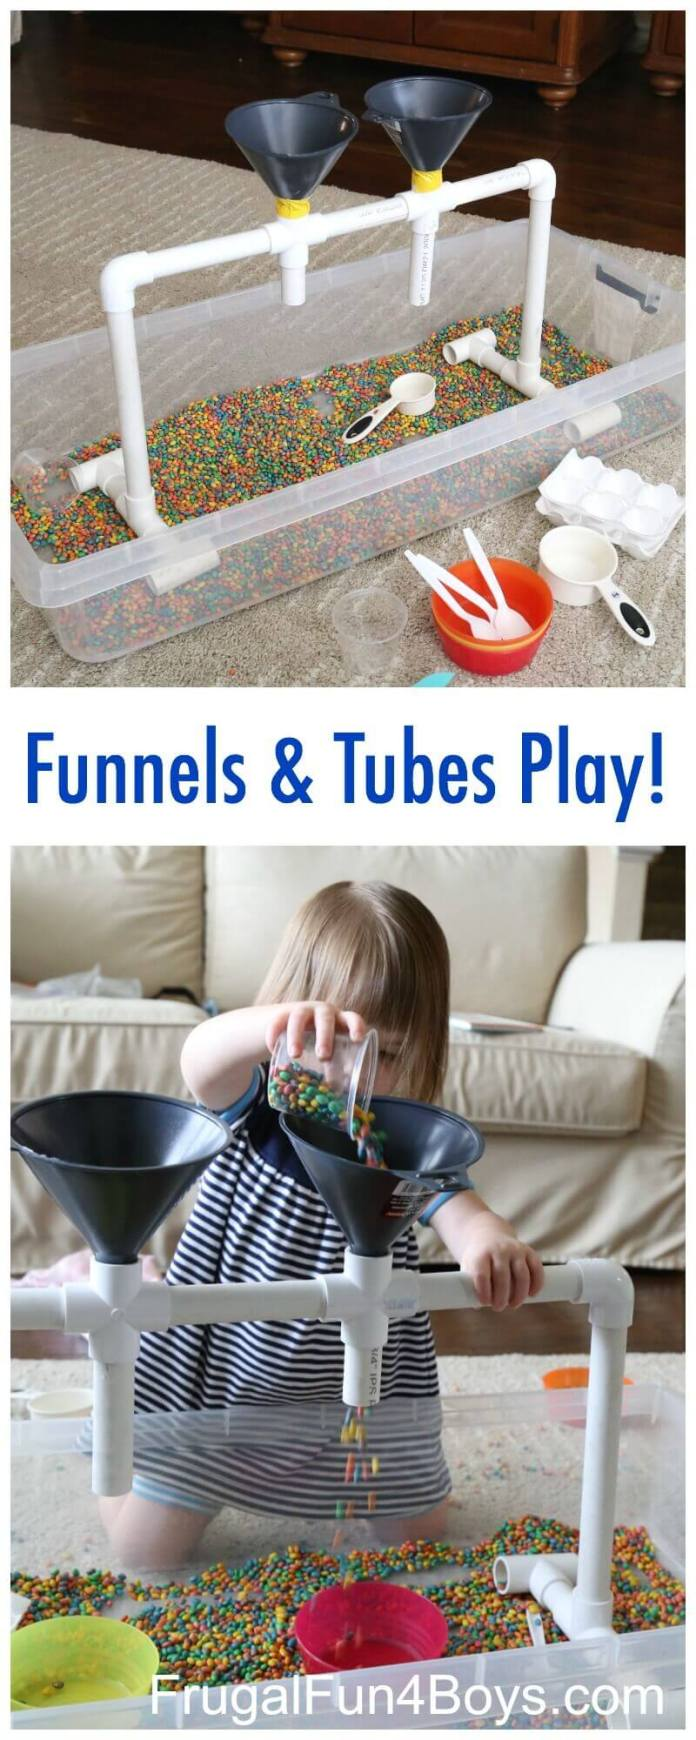 Pour-and-Play Tube and Funnel Setup